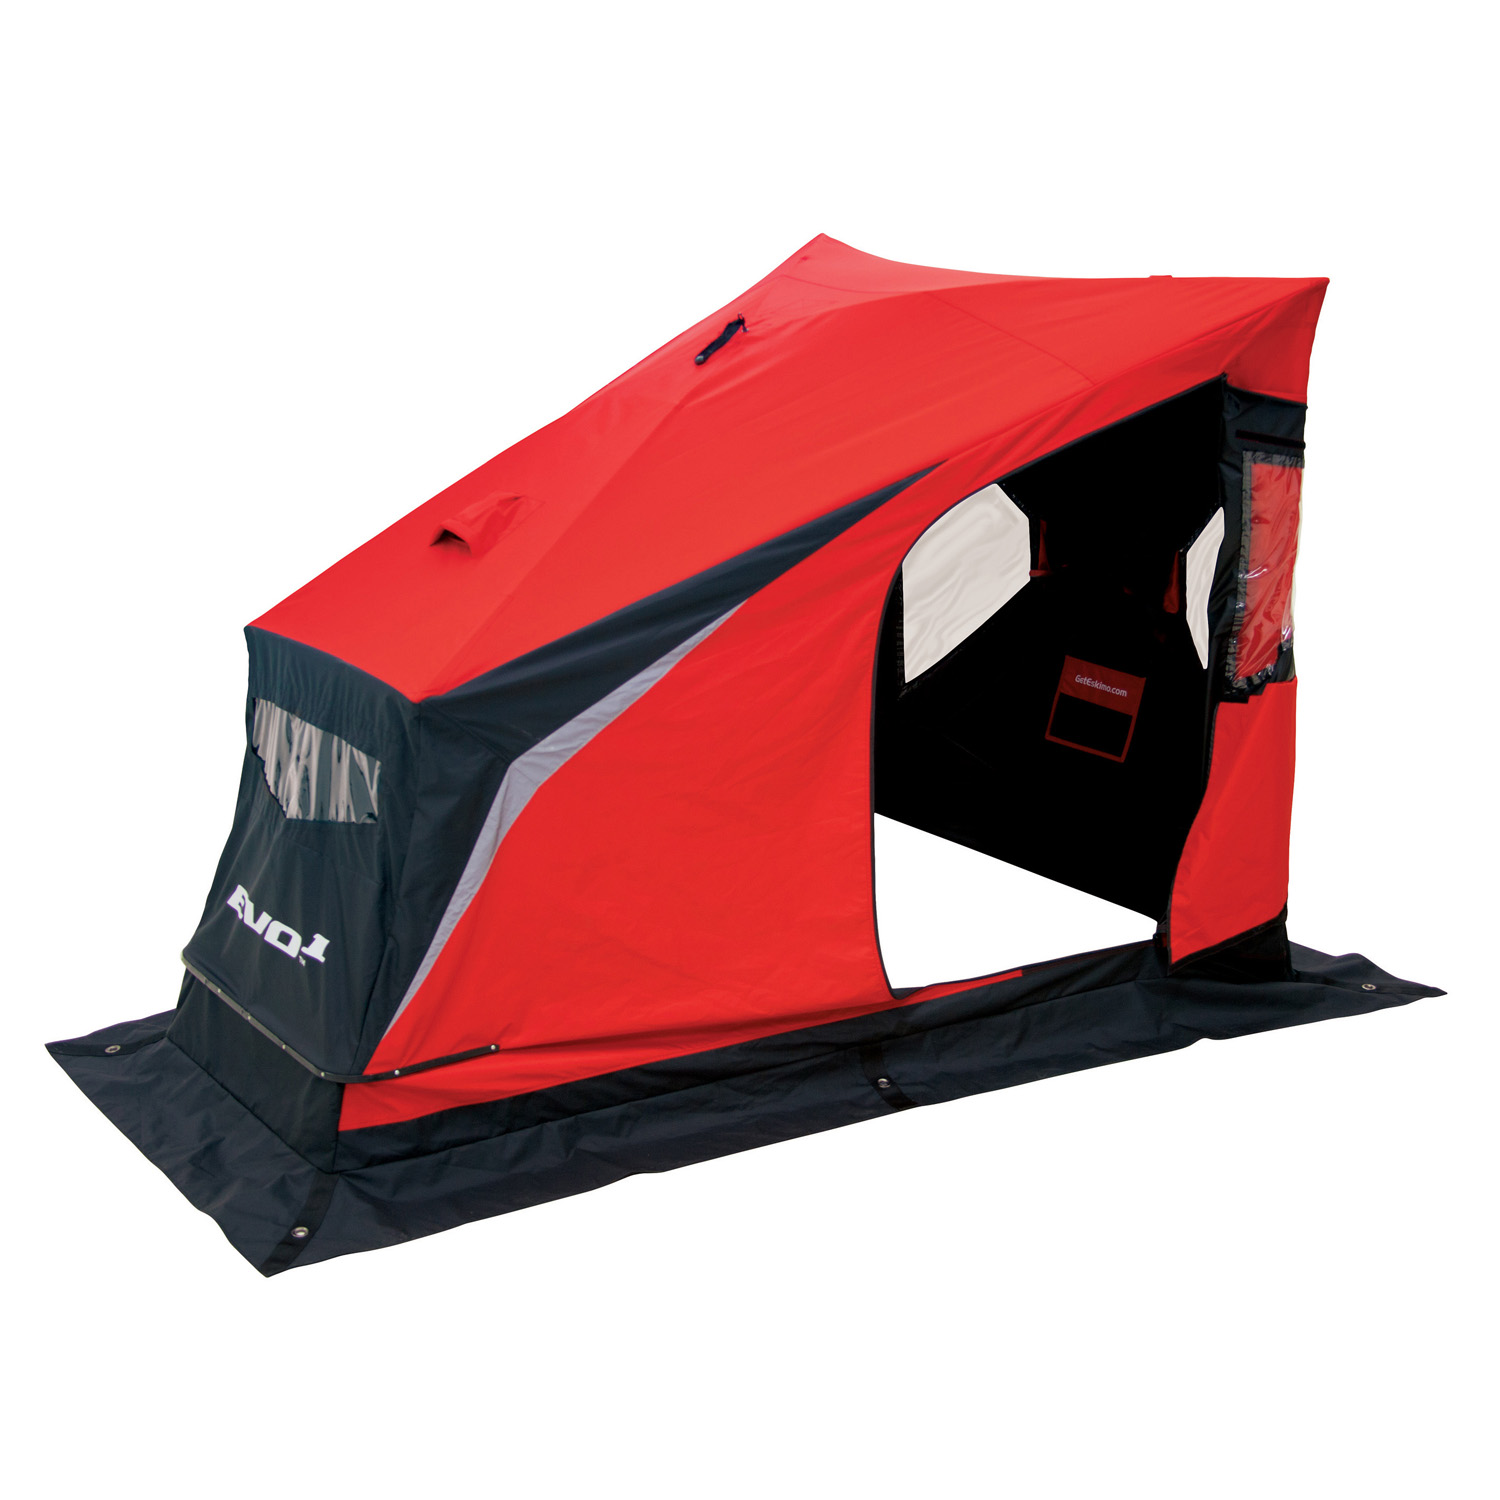 Eskimo 22100 Evo1 Portable Flip Style Ice Shelter with Pop Up Hub Sides, 1-Person by Ardisam, Inc.